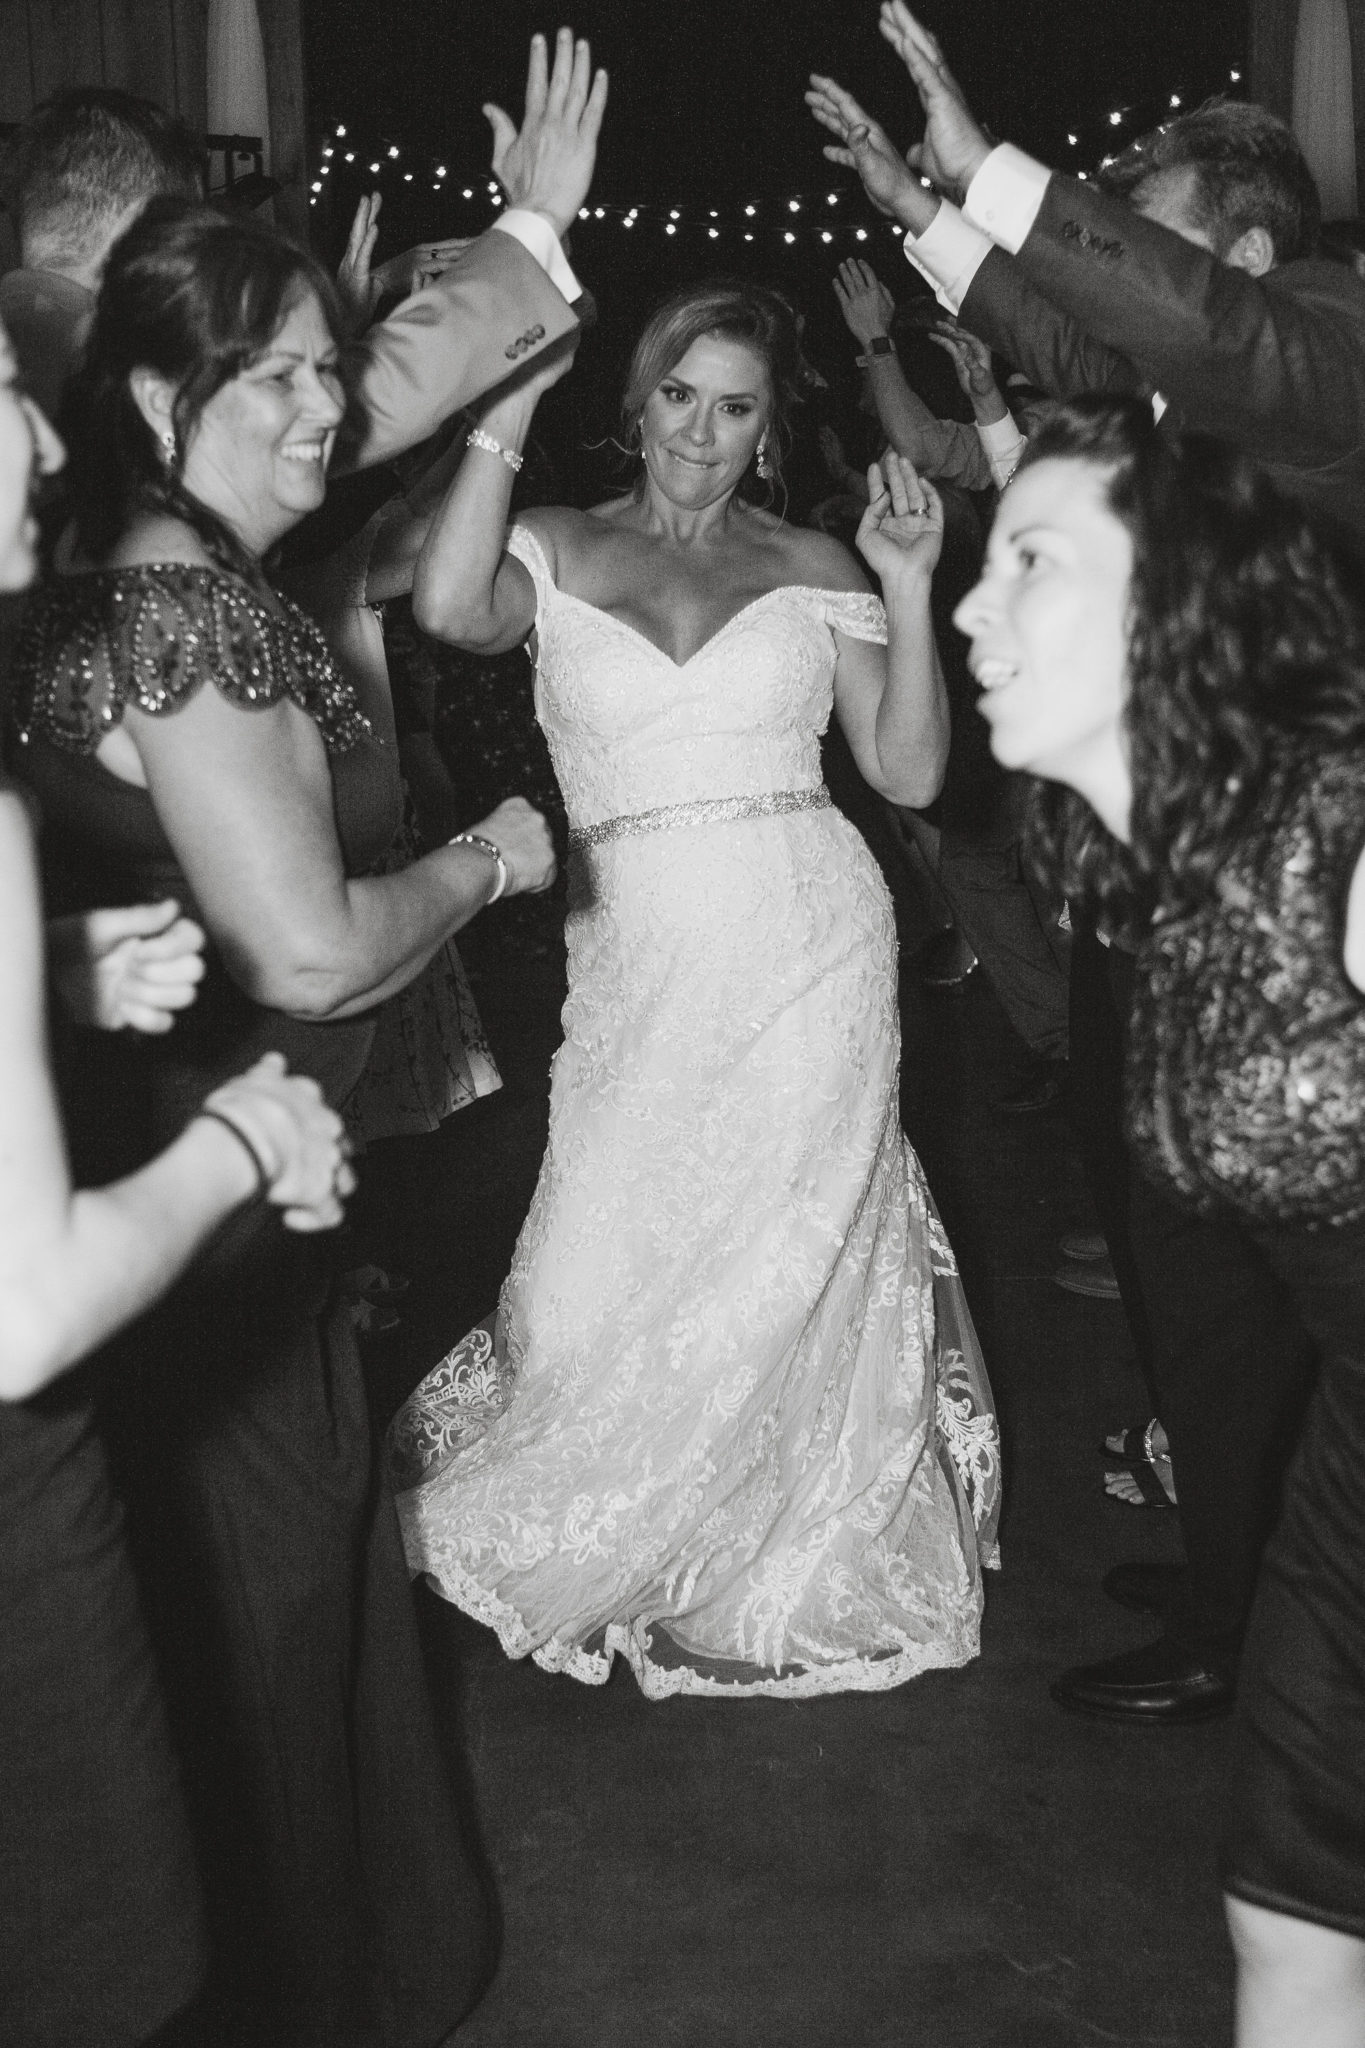 The bride rocking out with her wedding guests.